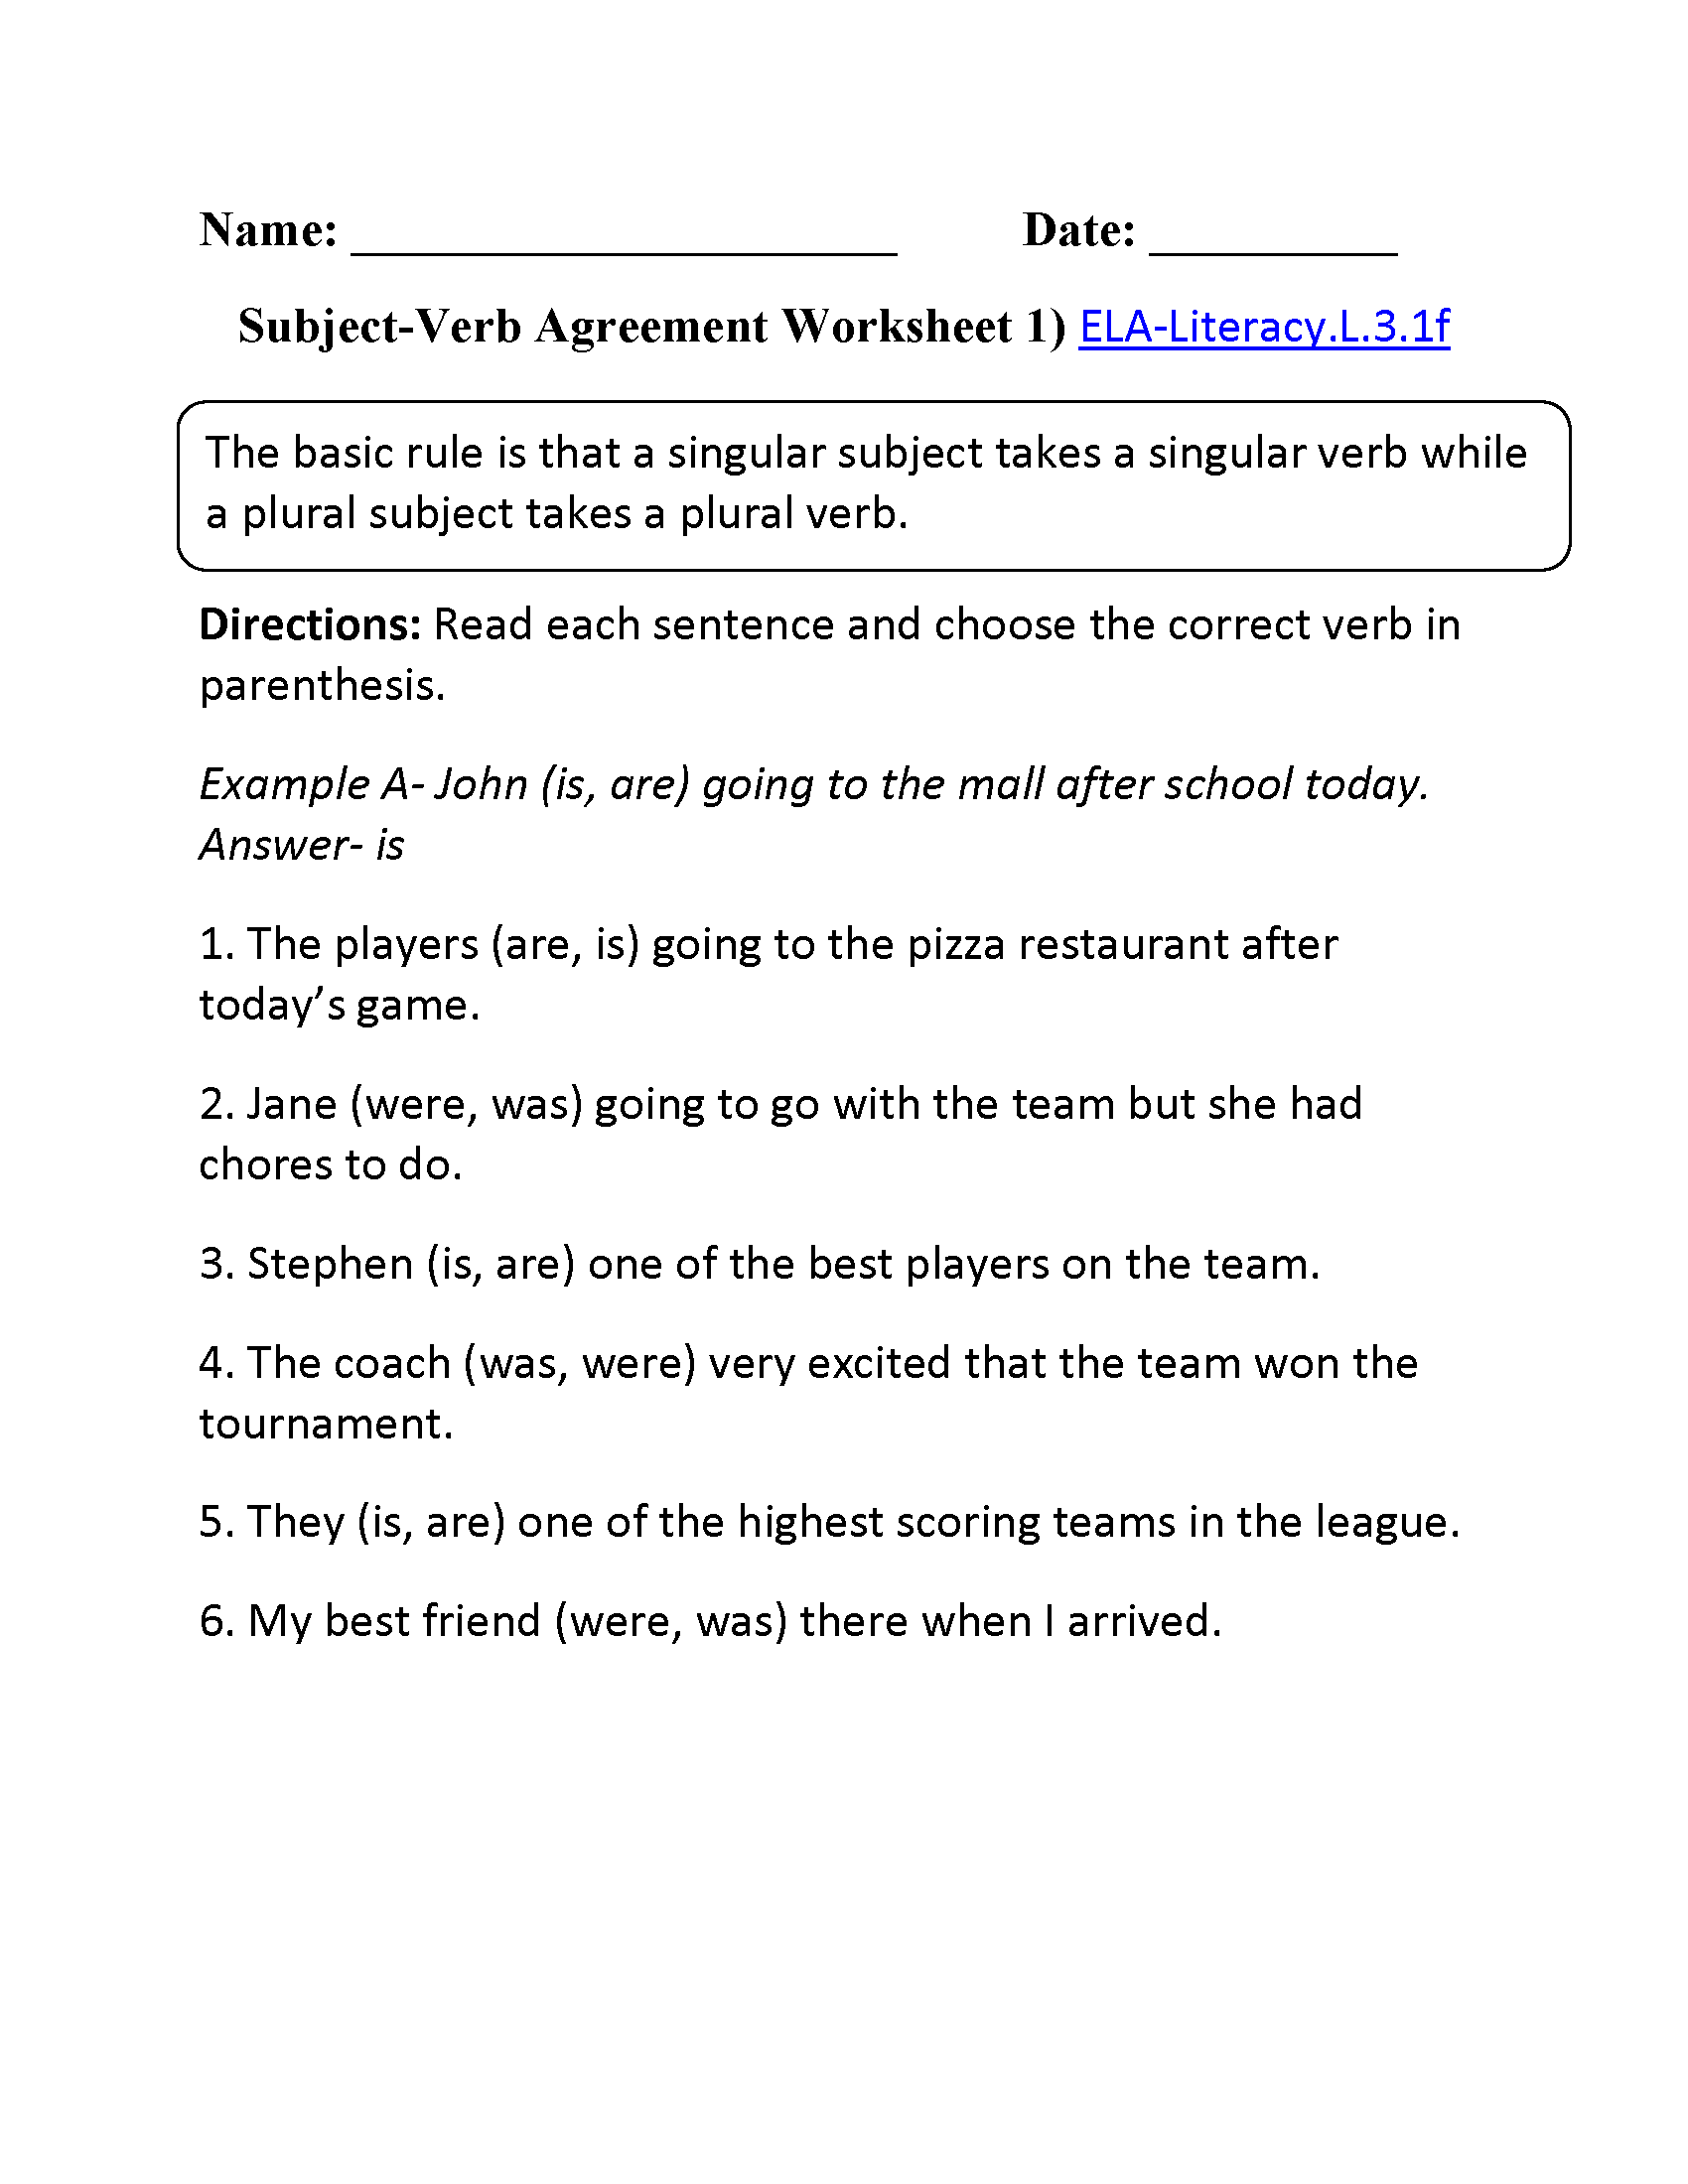 worksheet Subject Verb Agreement Worksheet 4th Grade 17 best images about l 3 1 f subject verb pronoun antecedent agreement on pinterest singular and plural nouns assessment language